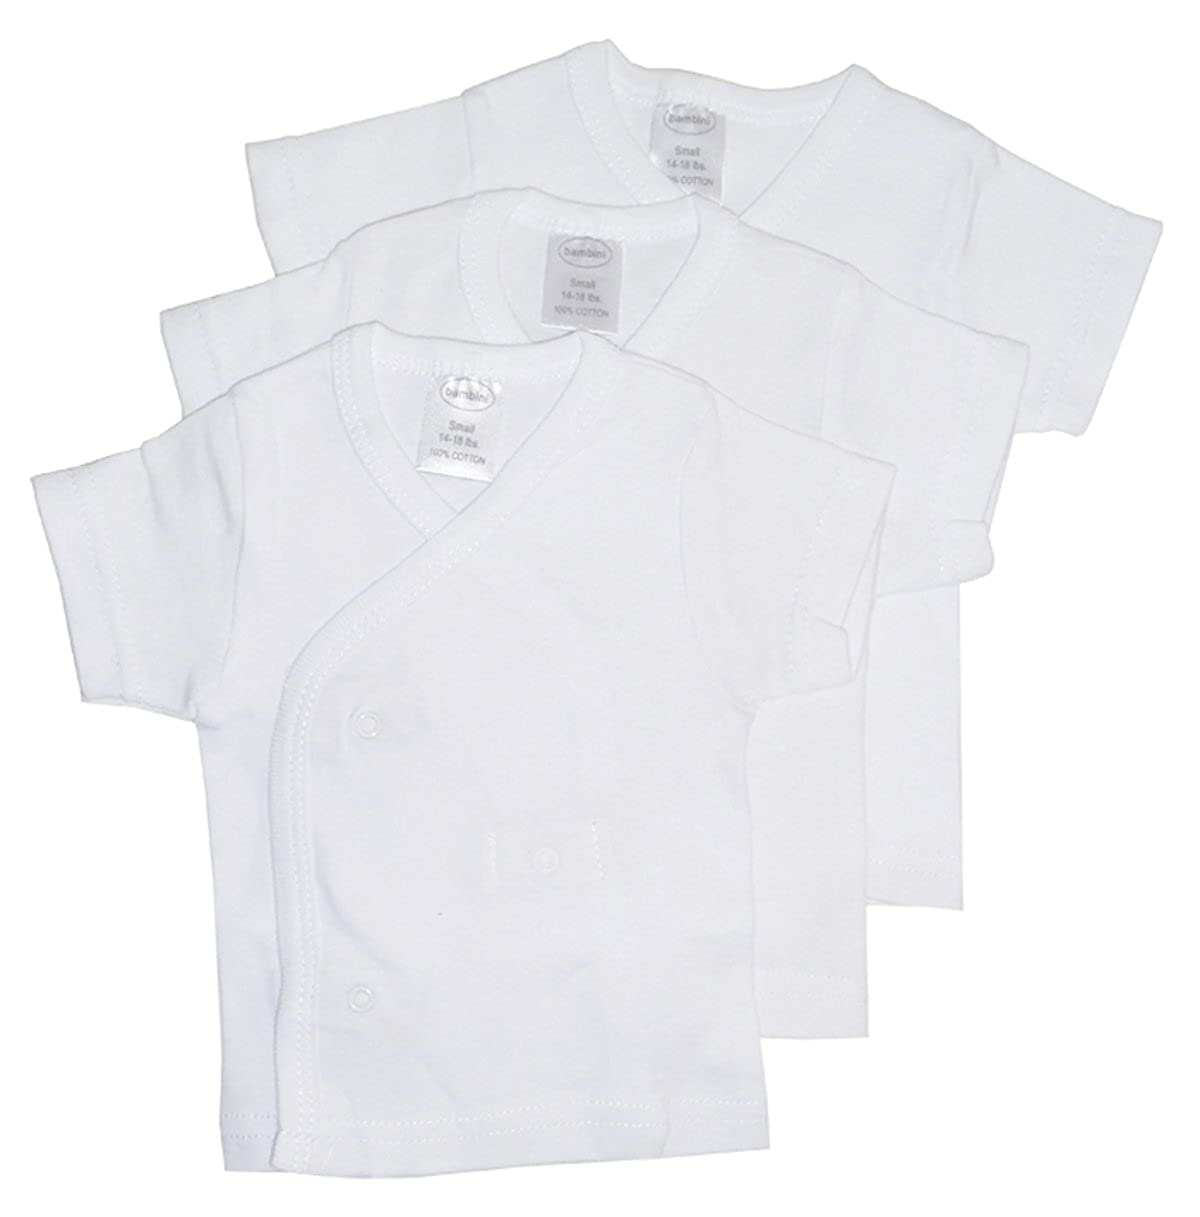 Bambini White Side Snap Short Sleeve Shirt - 3 Pack 075 S